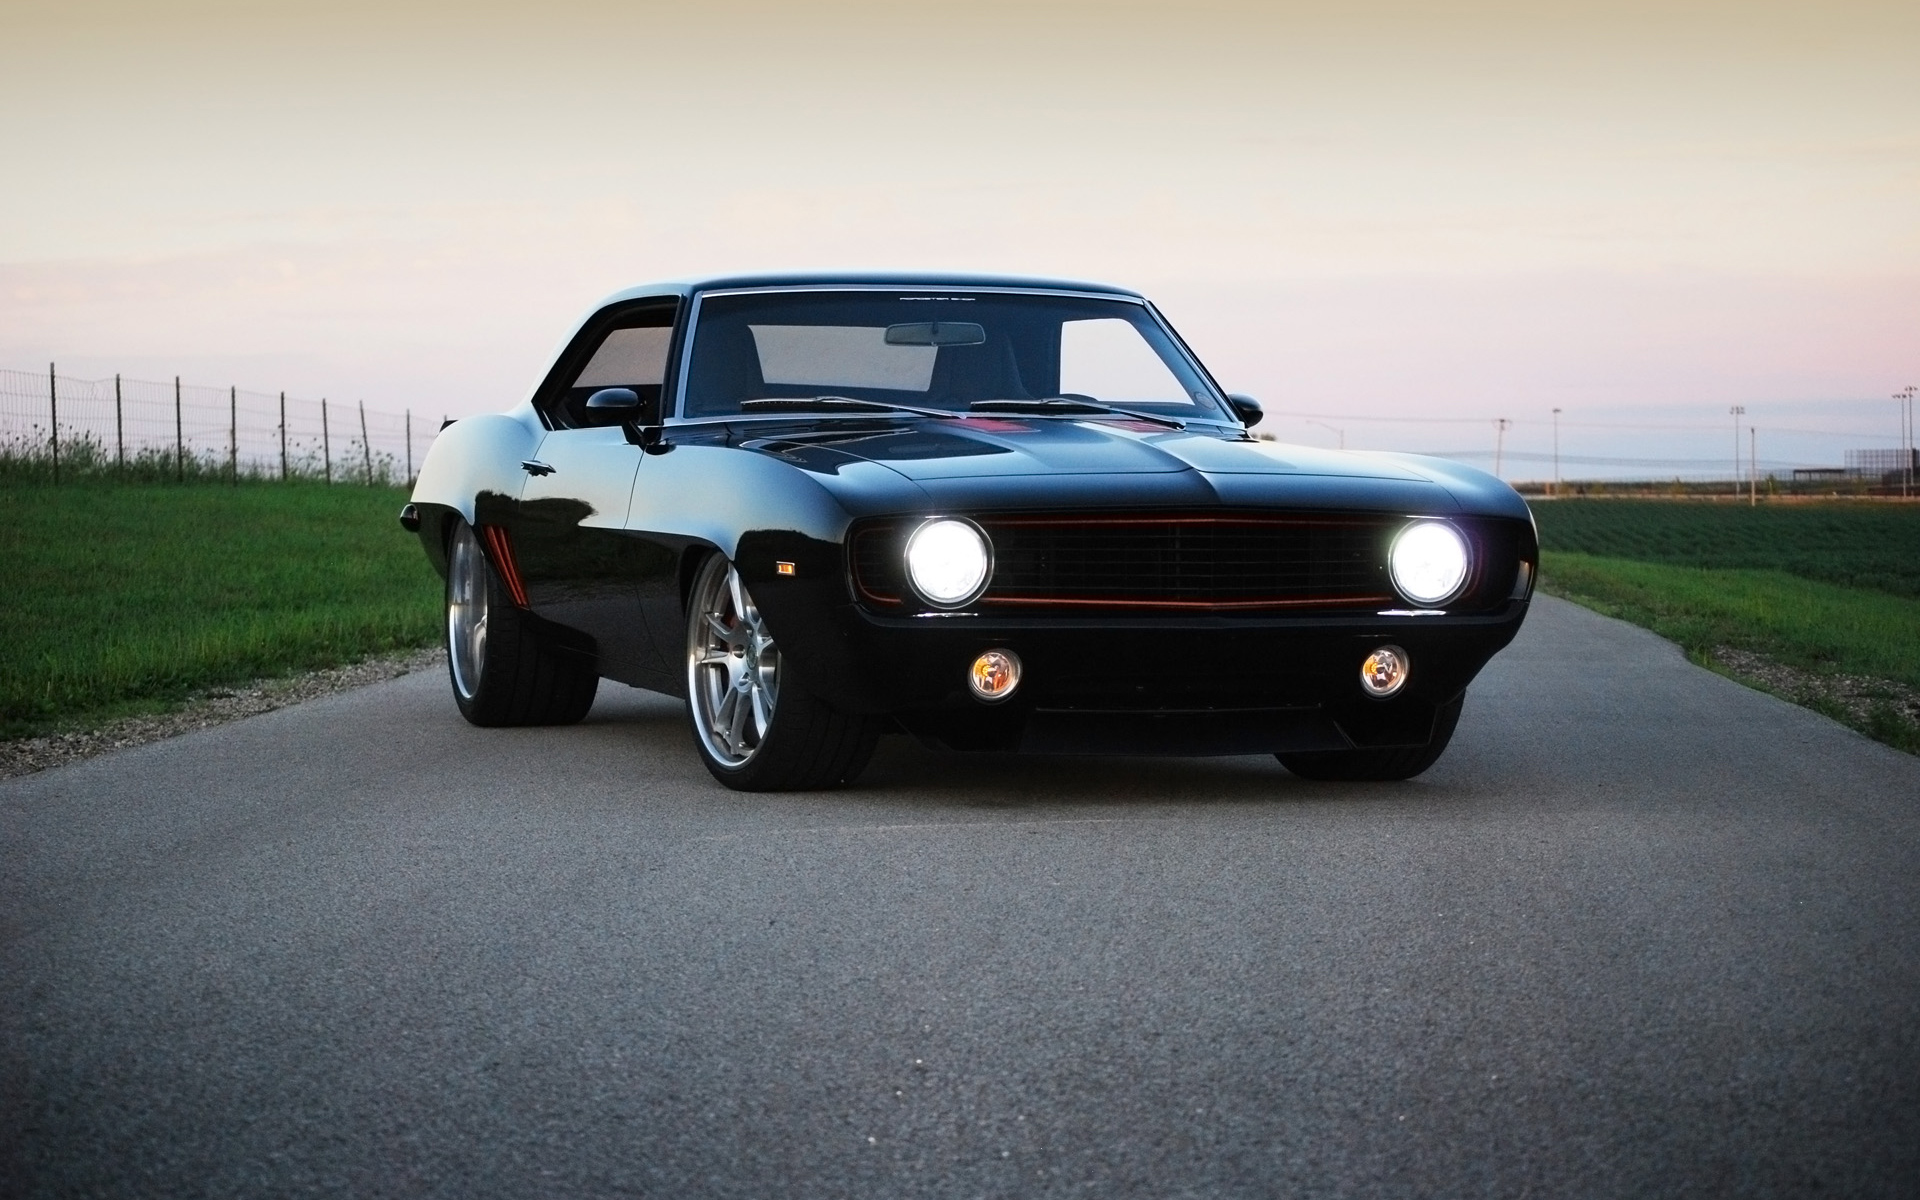 1969 Roadster Chevrolet Camaro Wallpaper Hd Car Wallpapers Id 2987